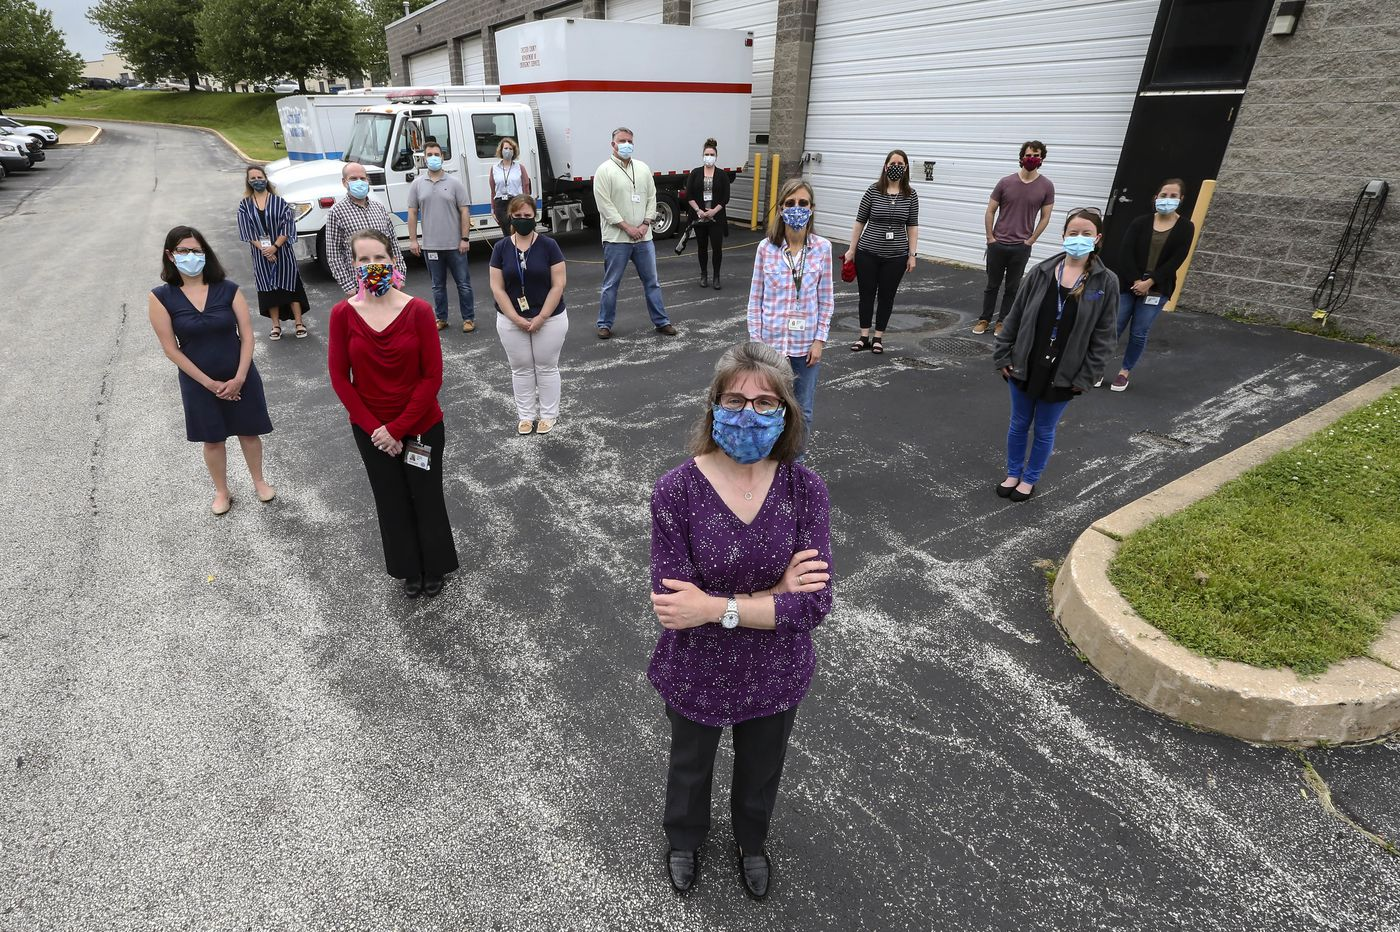 Chester County coronavirus case numbers could delay move to 'green' reopening phase